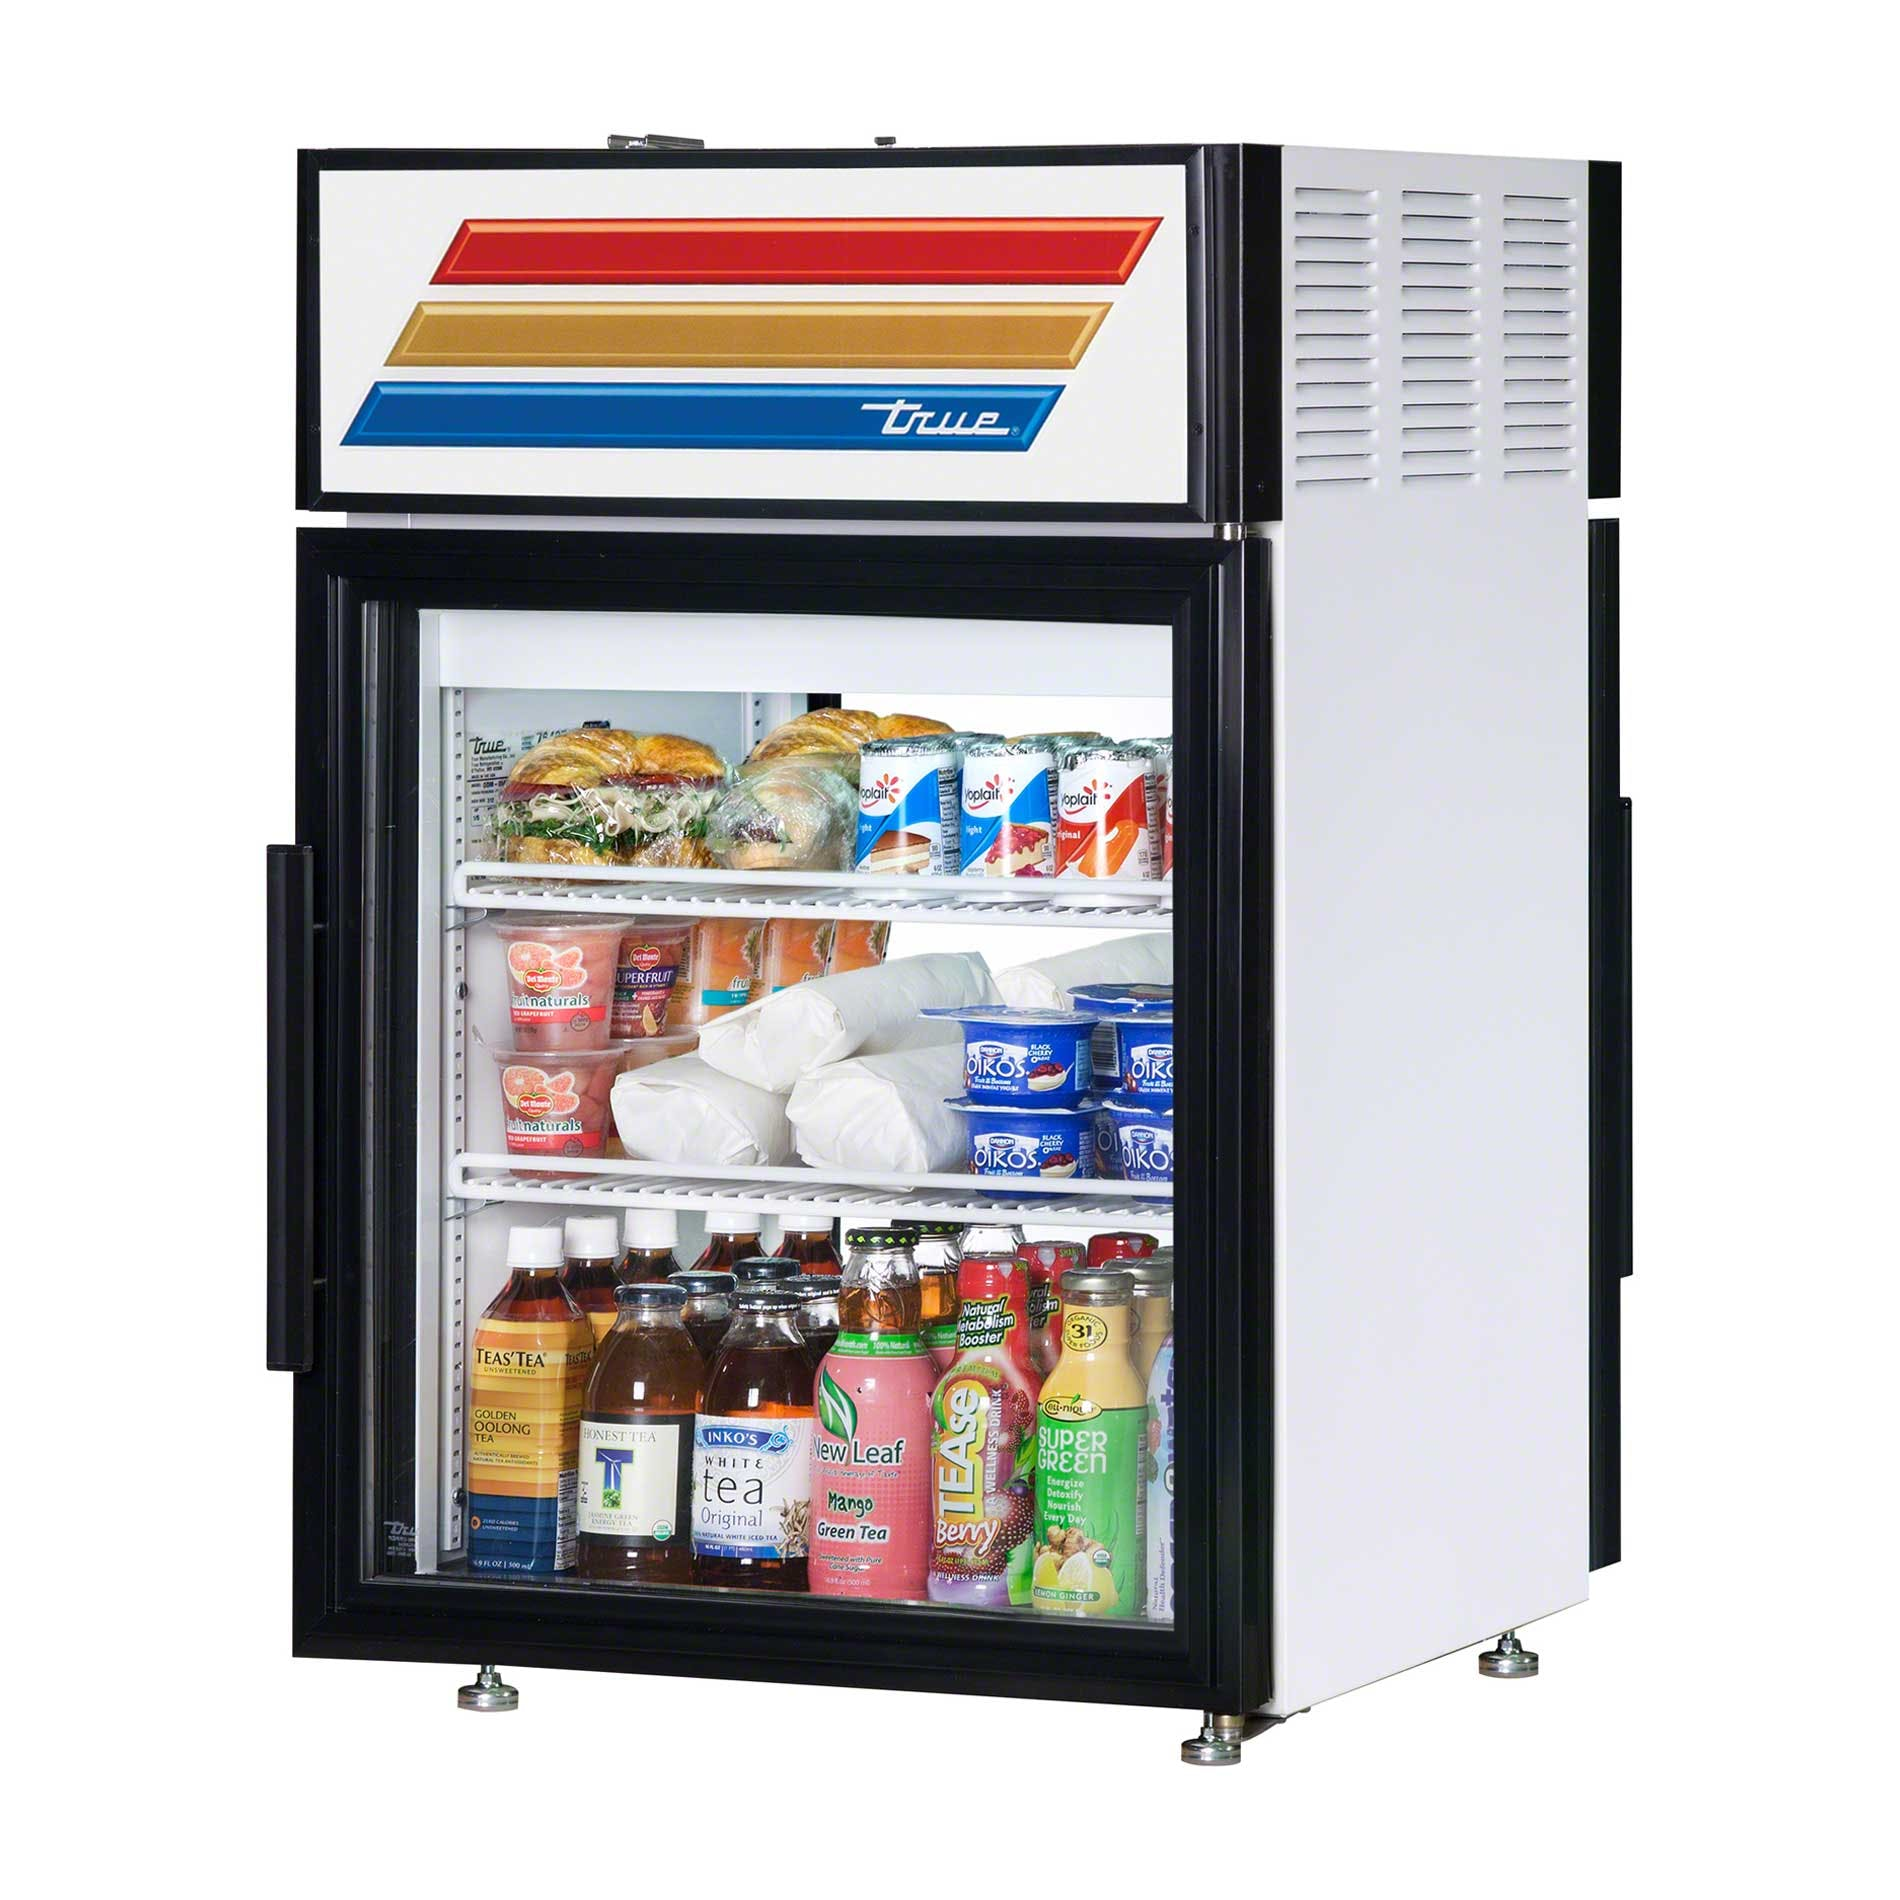 "True - GDM-5PT-LD 24"" Countertop Glass Door Merchandiser Refrigerator LED Commercial refrigerator sold by Food Service Warehouse"